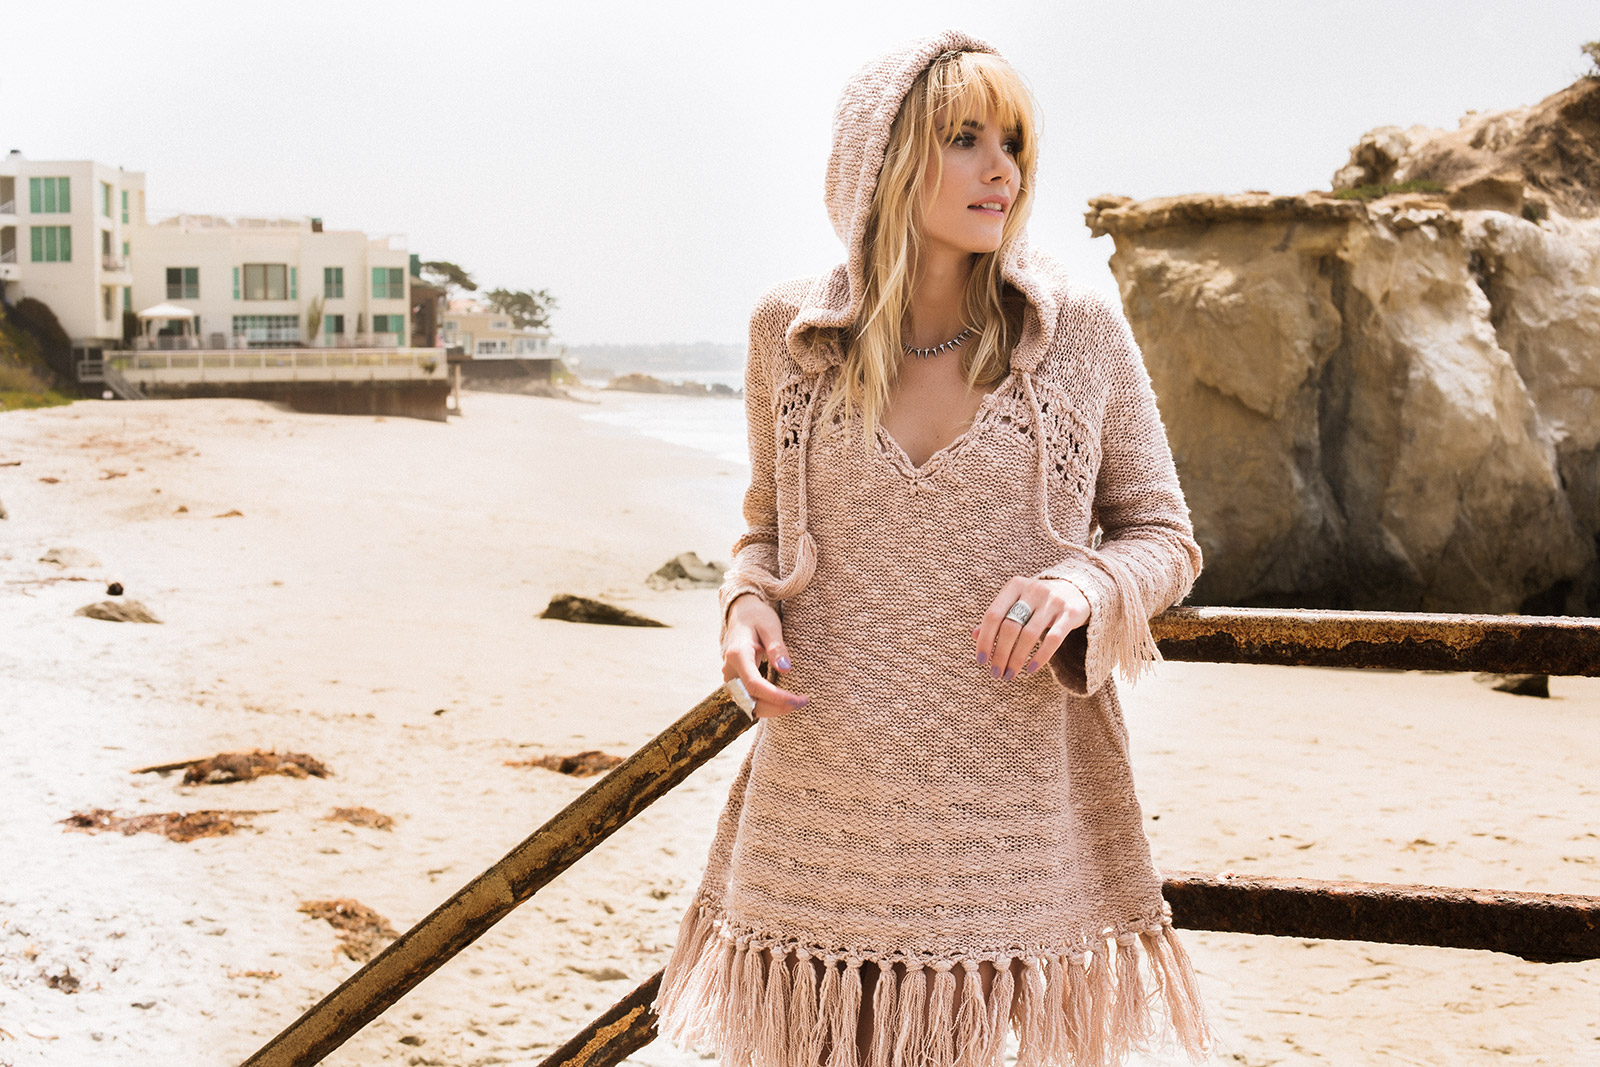 Boho Style at the Malibu Beach. El Matador